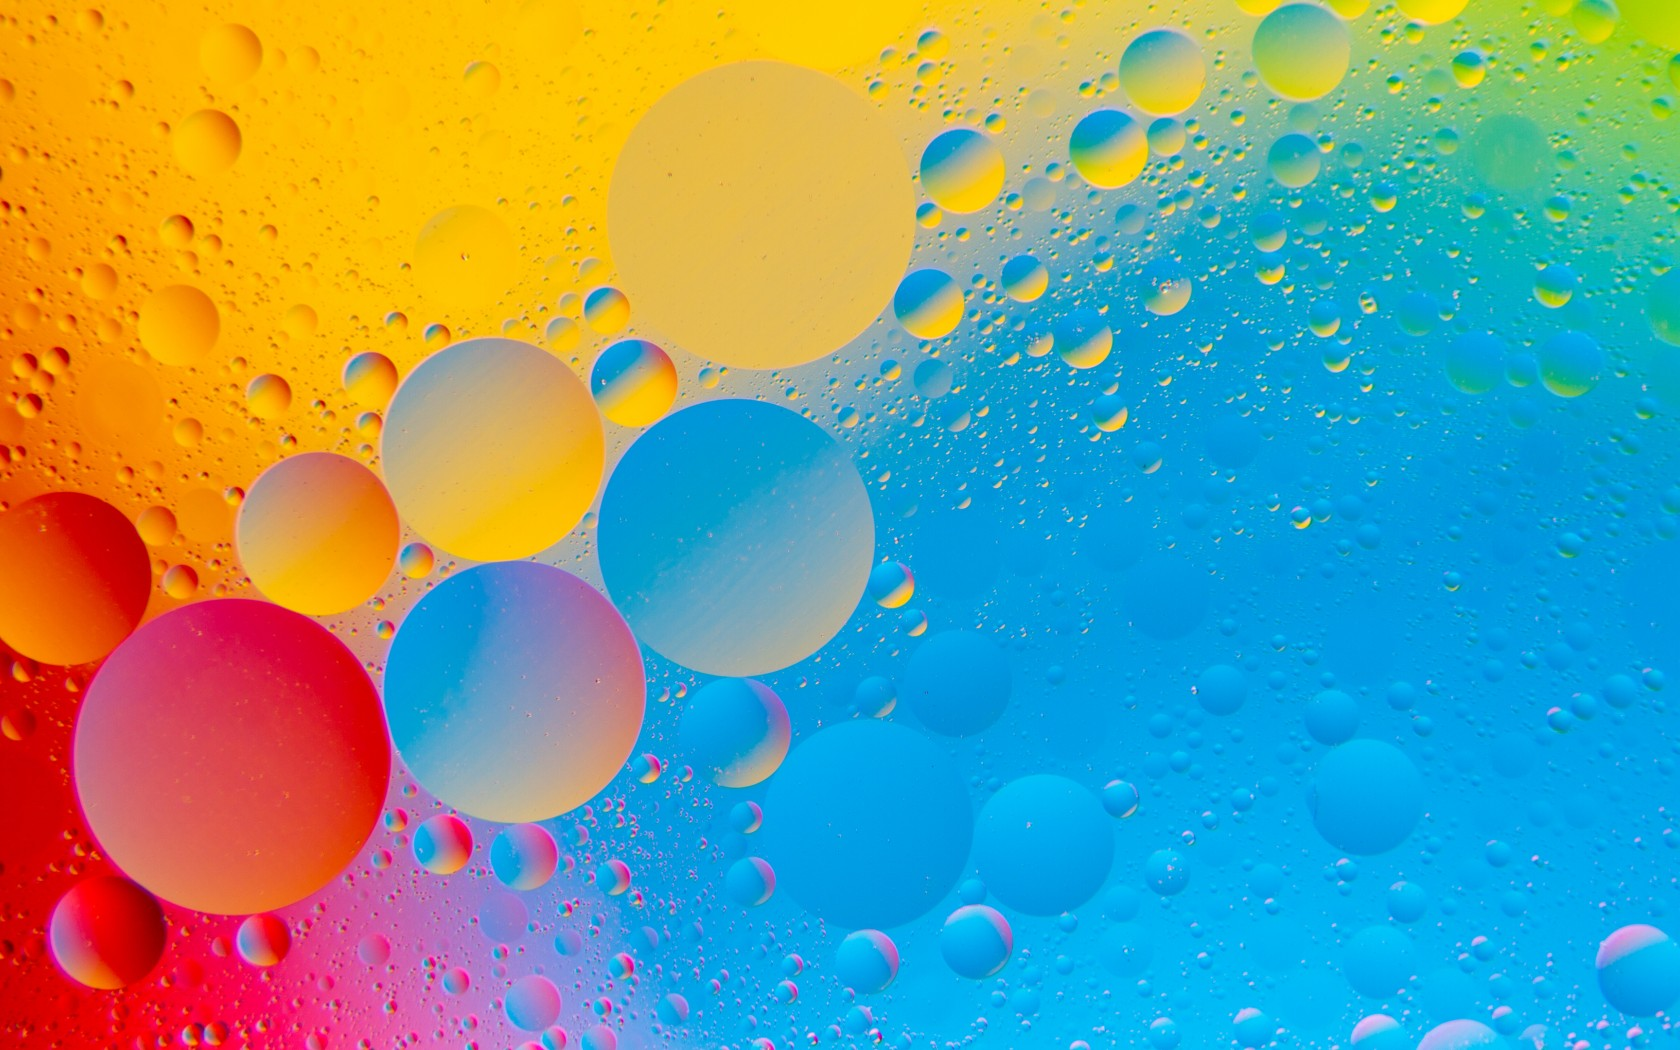 Colourful Bubbles 4K HD Abstract Wallpaper 1680x1050